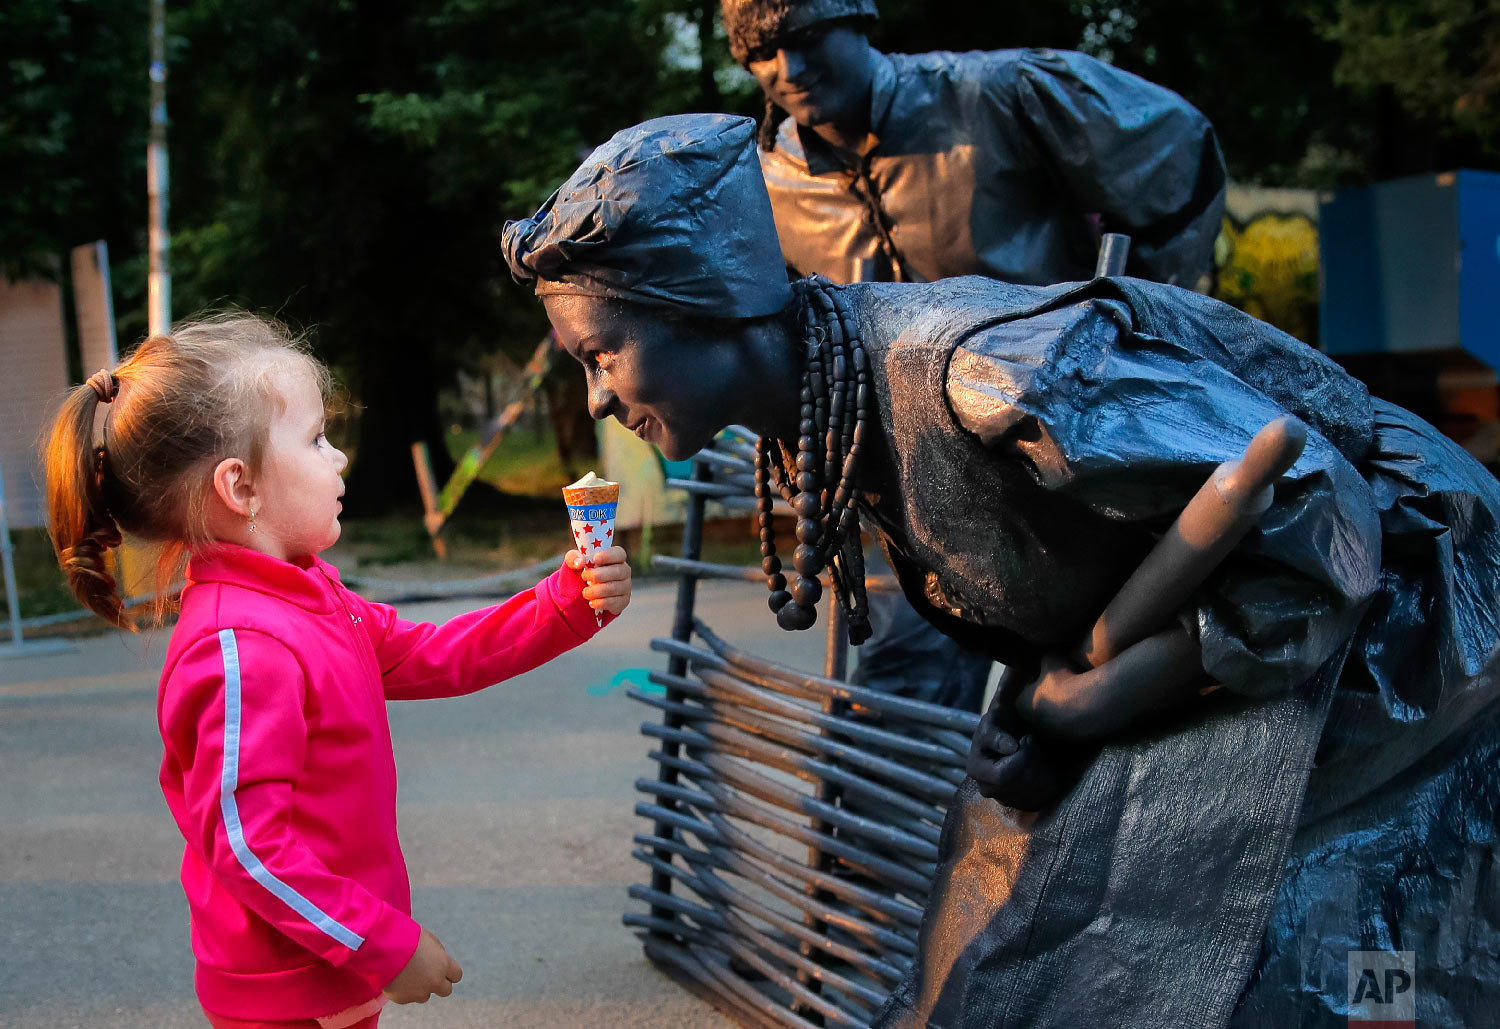 """A child offers ice-cream to artists of Ukraine's Artel Myth theatre performing """"A day in the life of Ukrainians"""" at the Living Statues International Festival, in Bucharest, Romania on Thursday, May 24, 2018. (AP Photo/Vadim Ghirda)"""